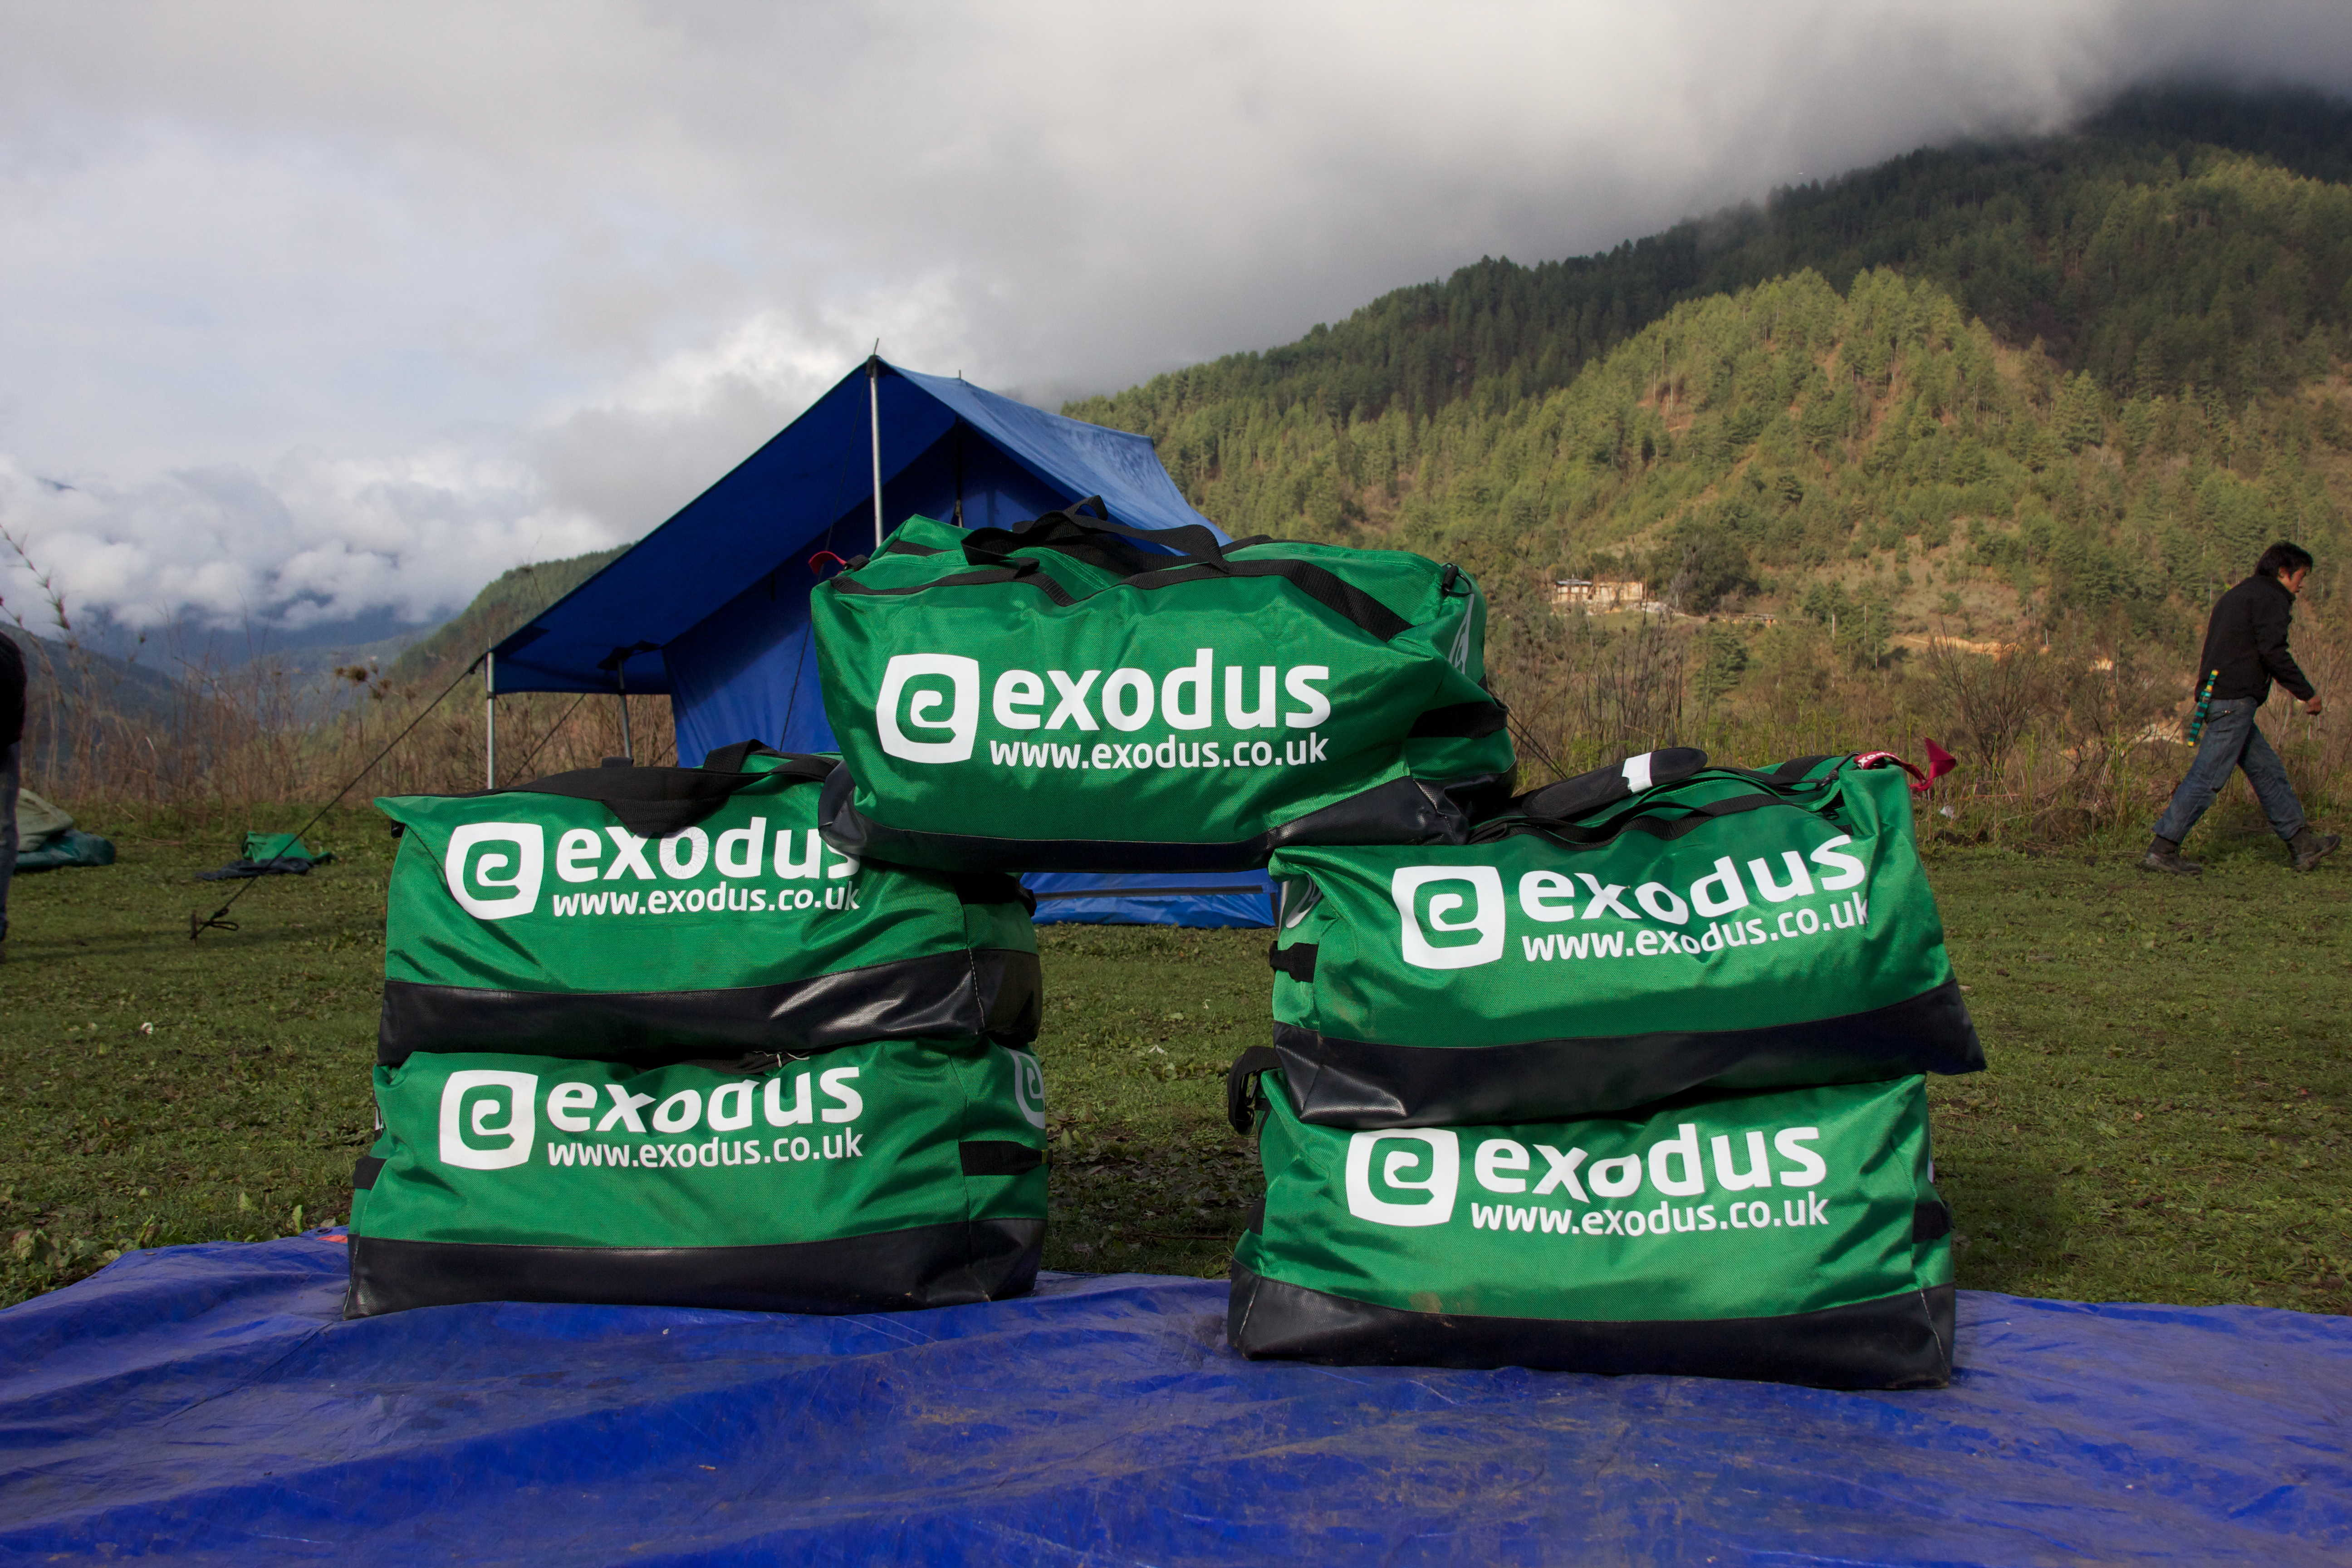 Exodus Kit Bags in Bhutan